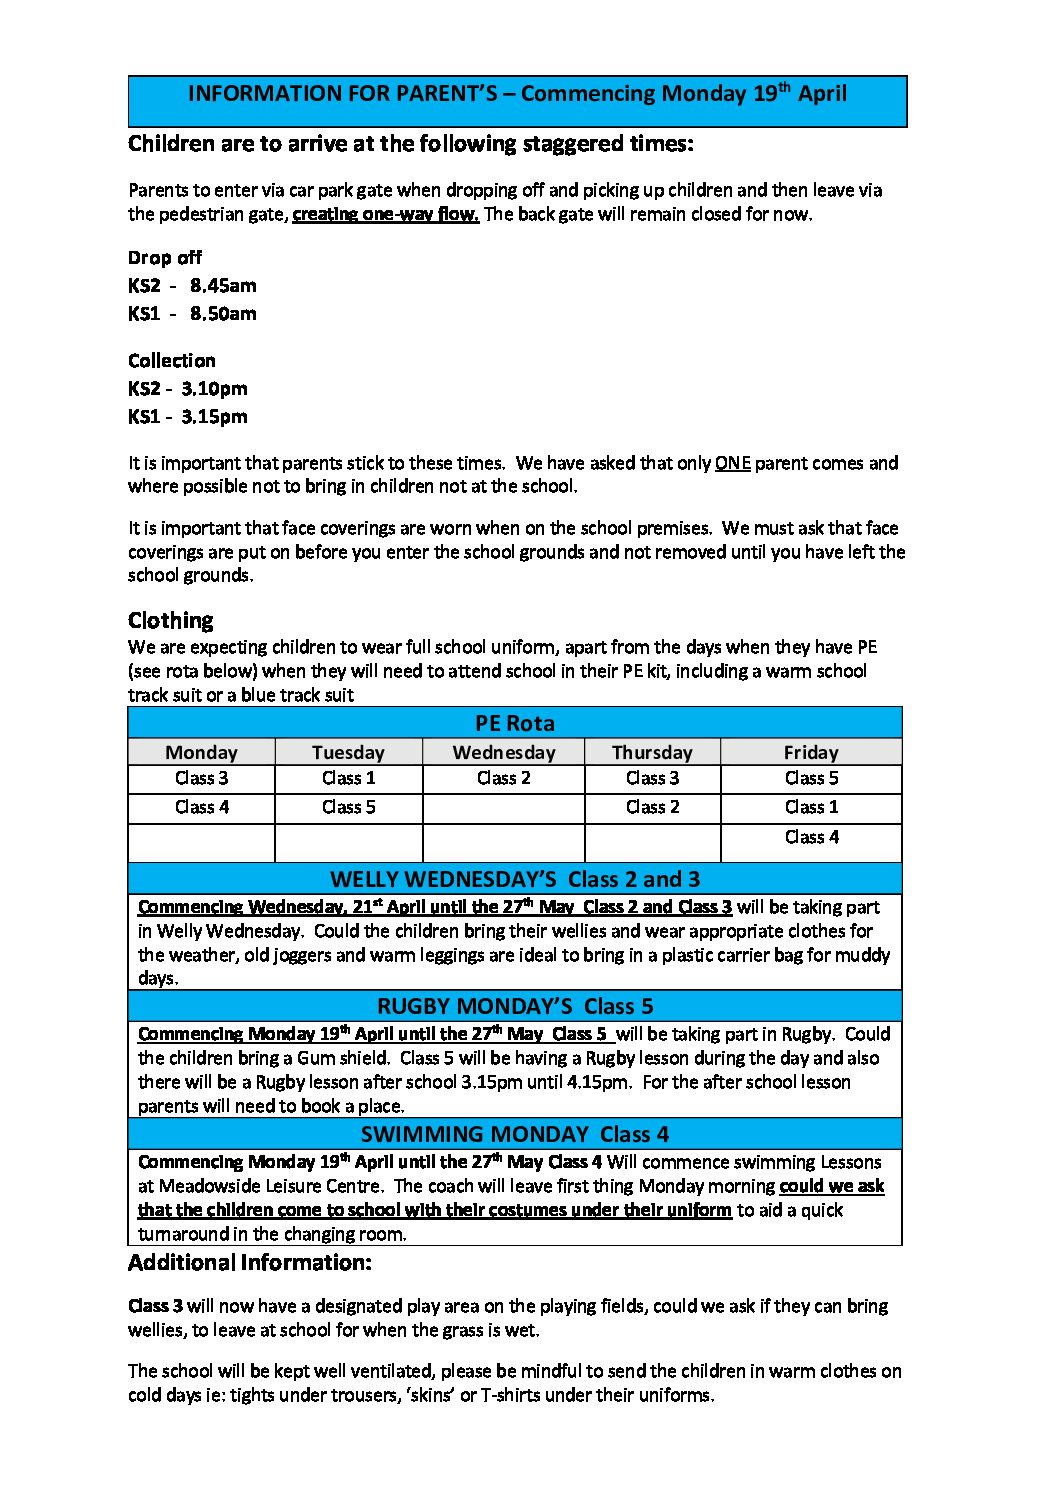 INFORMATION FOR PARENTS – RETURN TO SCHOOL MONDAY 19TH APRIL 2021